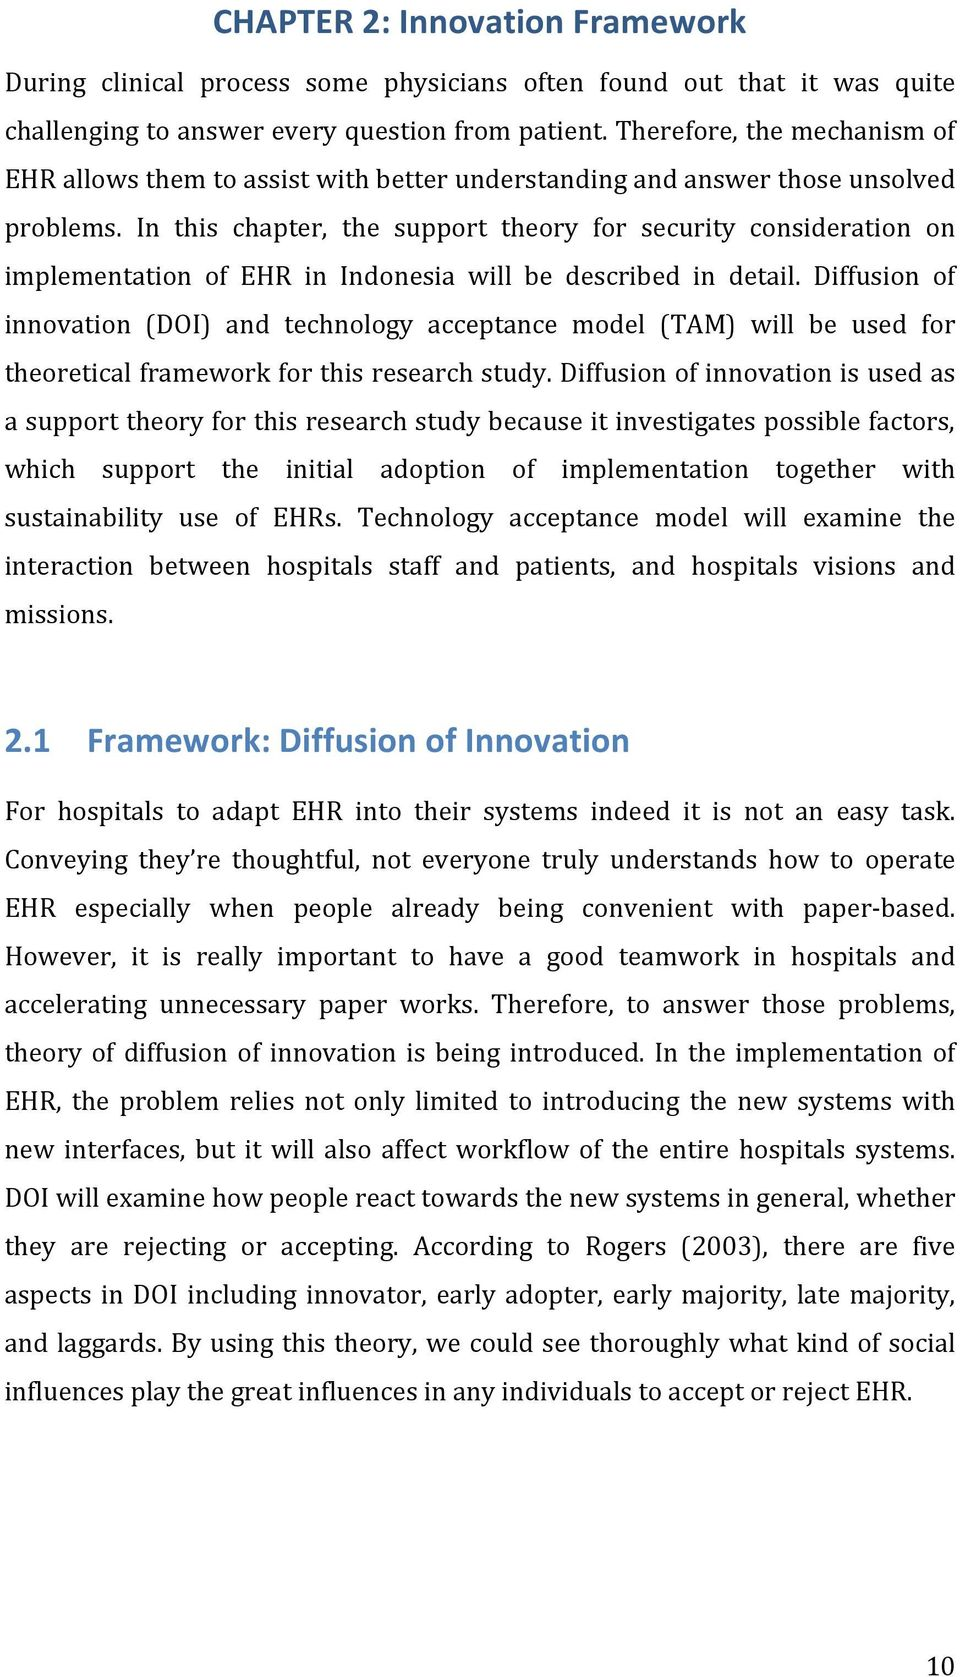 In this chapter, the support theory for security consideration on implementation of EHR in Indonesia will be described in detail.